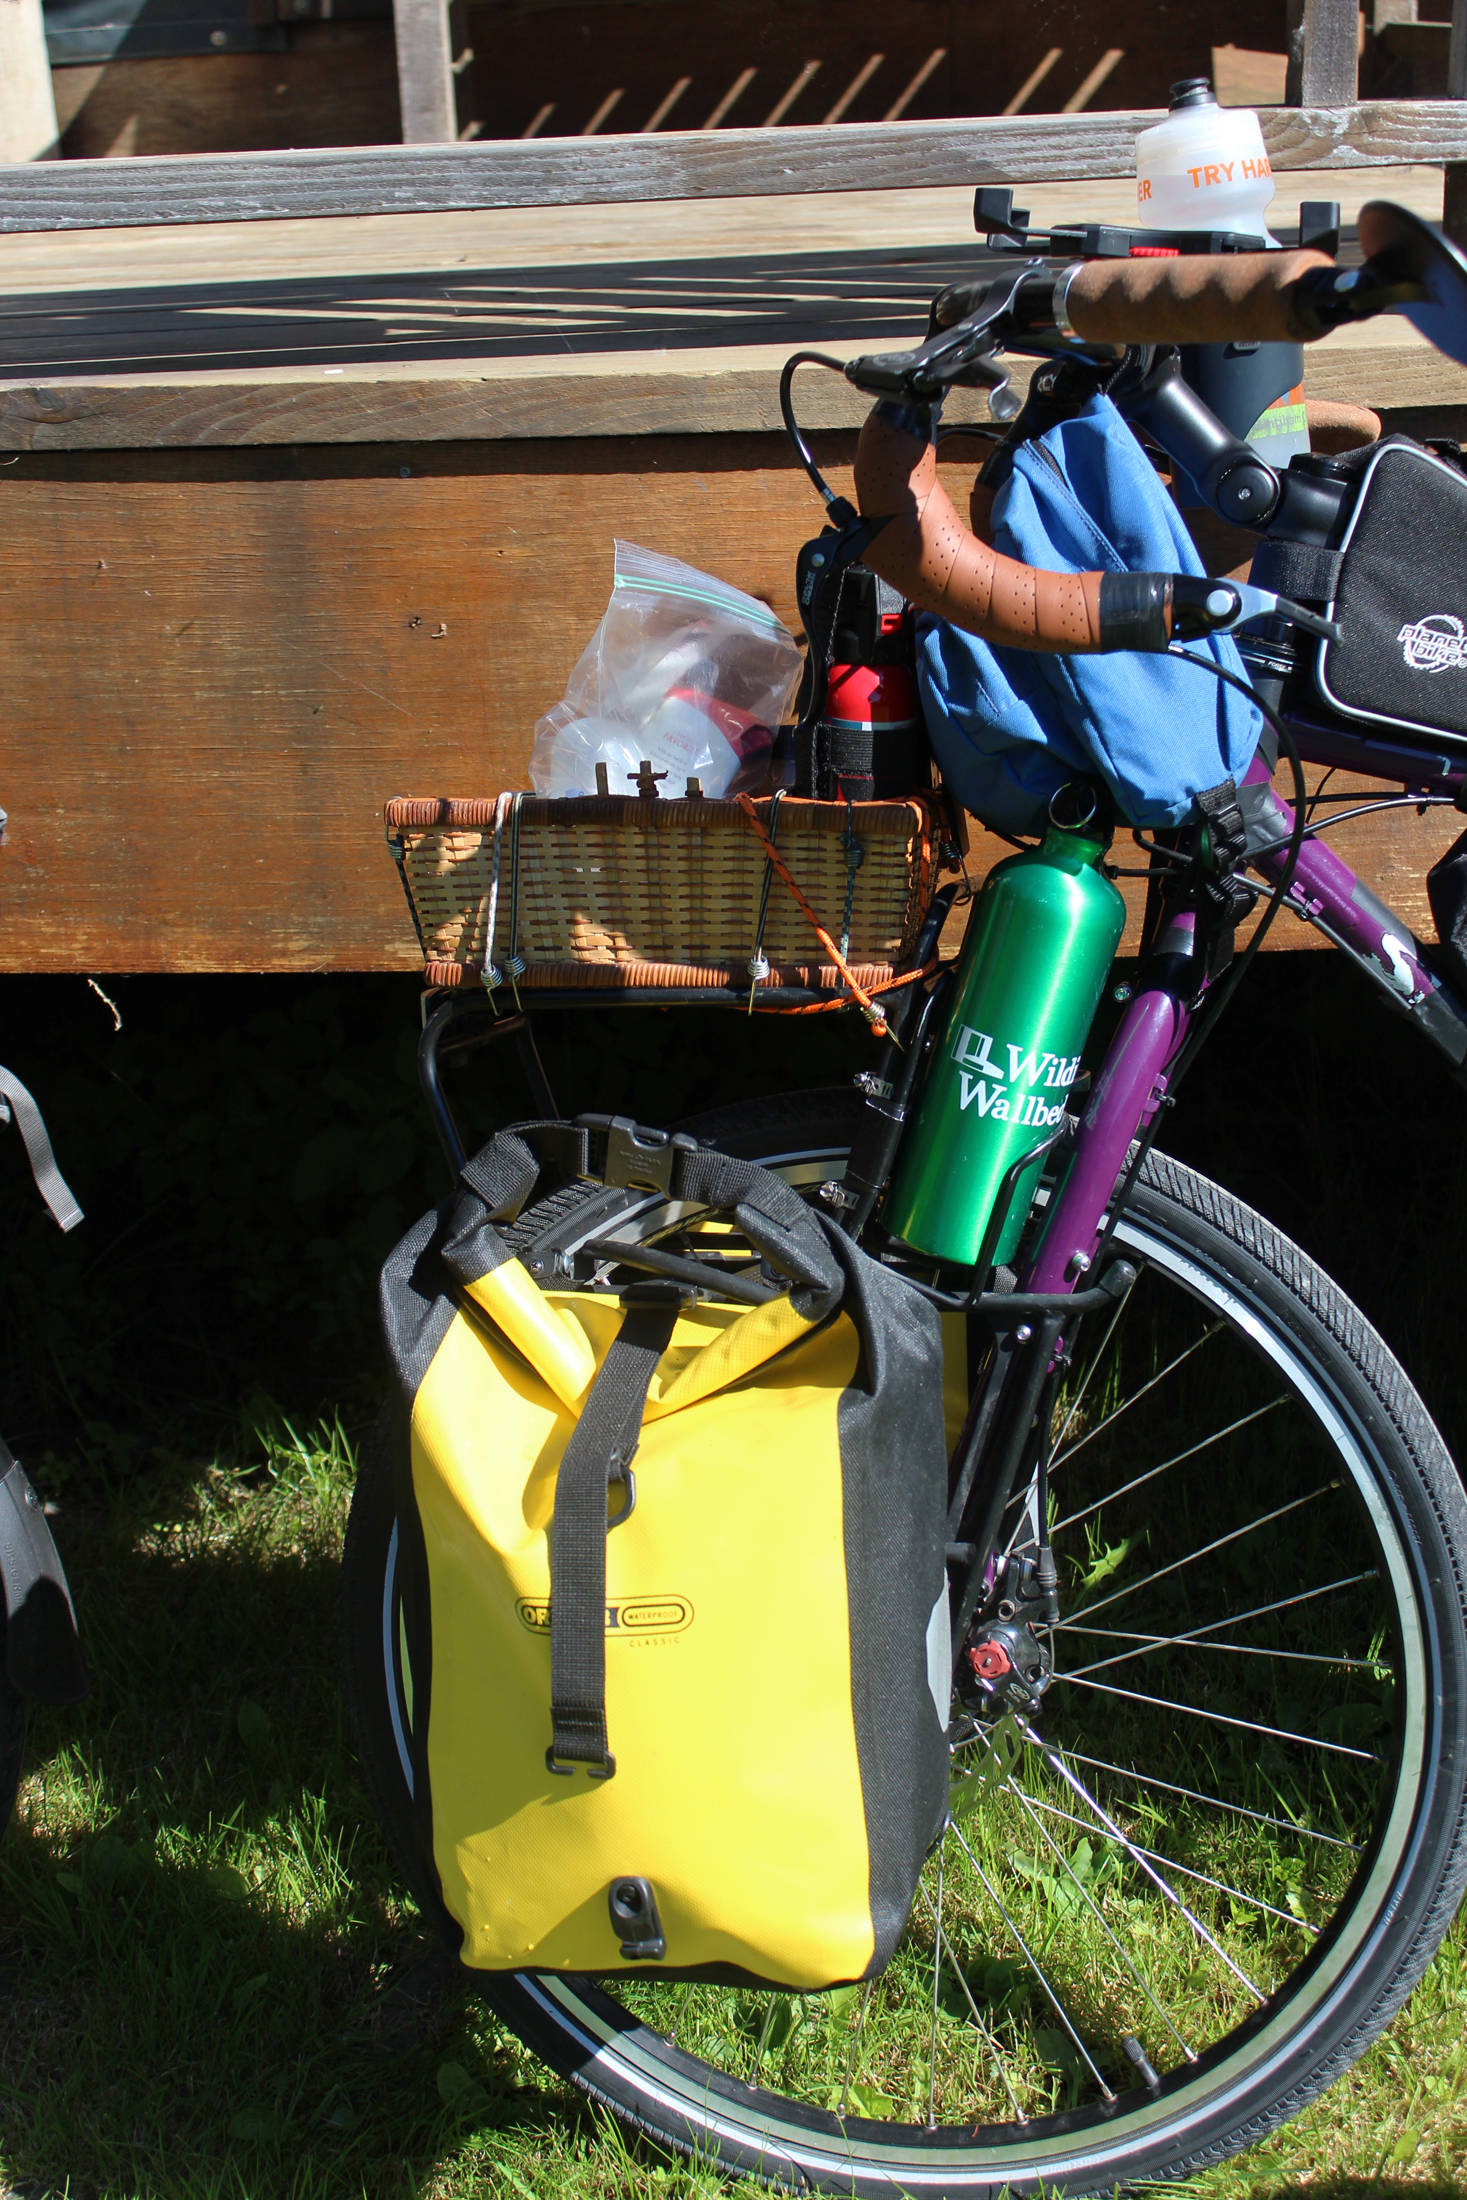 Gear rests affixed to Chris Haag's bike in various locations as he and his wife, Sophie George, prepare to start on a journey from Alaska to Argentina on Monday, July 2, 2018 in Homer, Alaska. Each will carry about 80-100 pounds of supplies, food and water on their bikes for the two-year adventure. (Photo by Megan Pacer/Homer News)